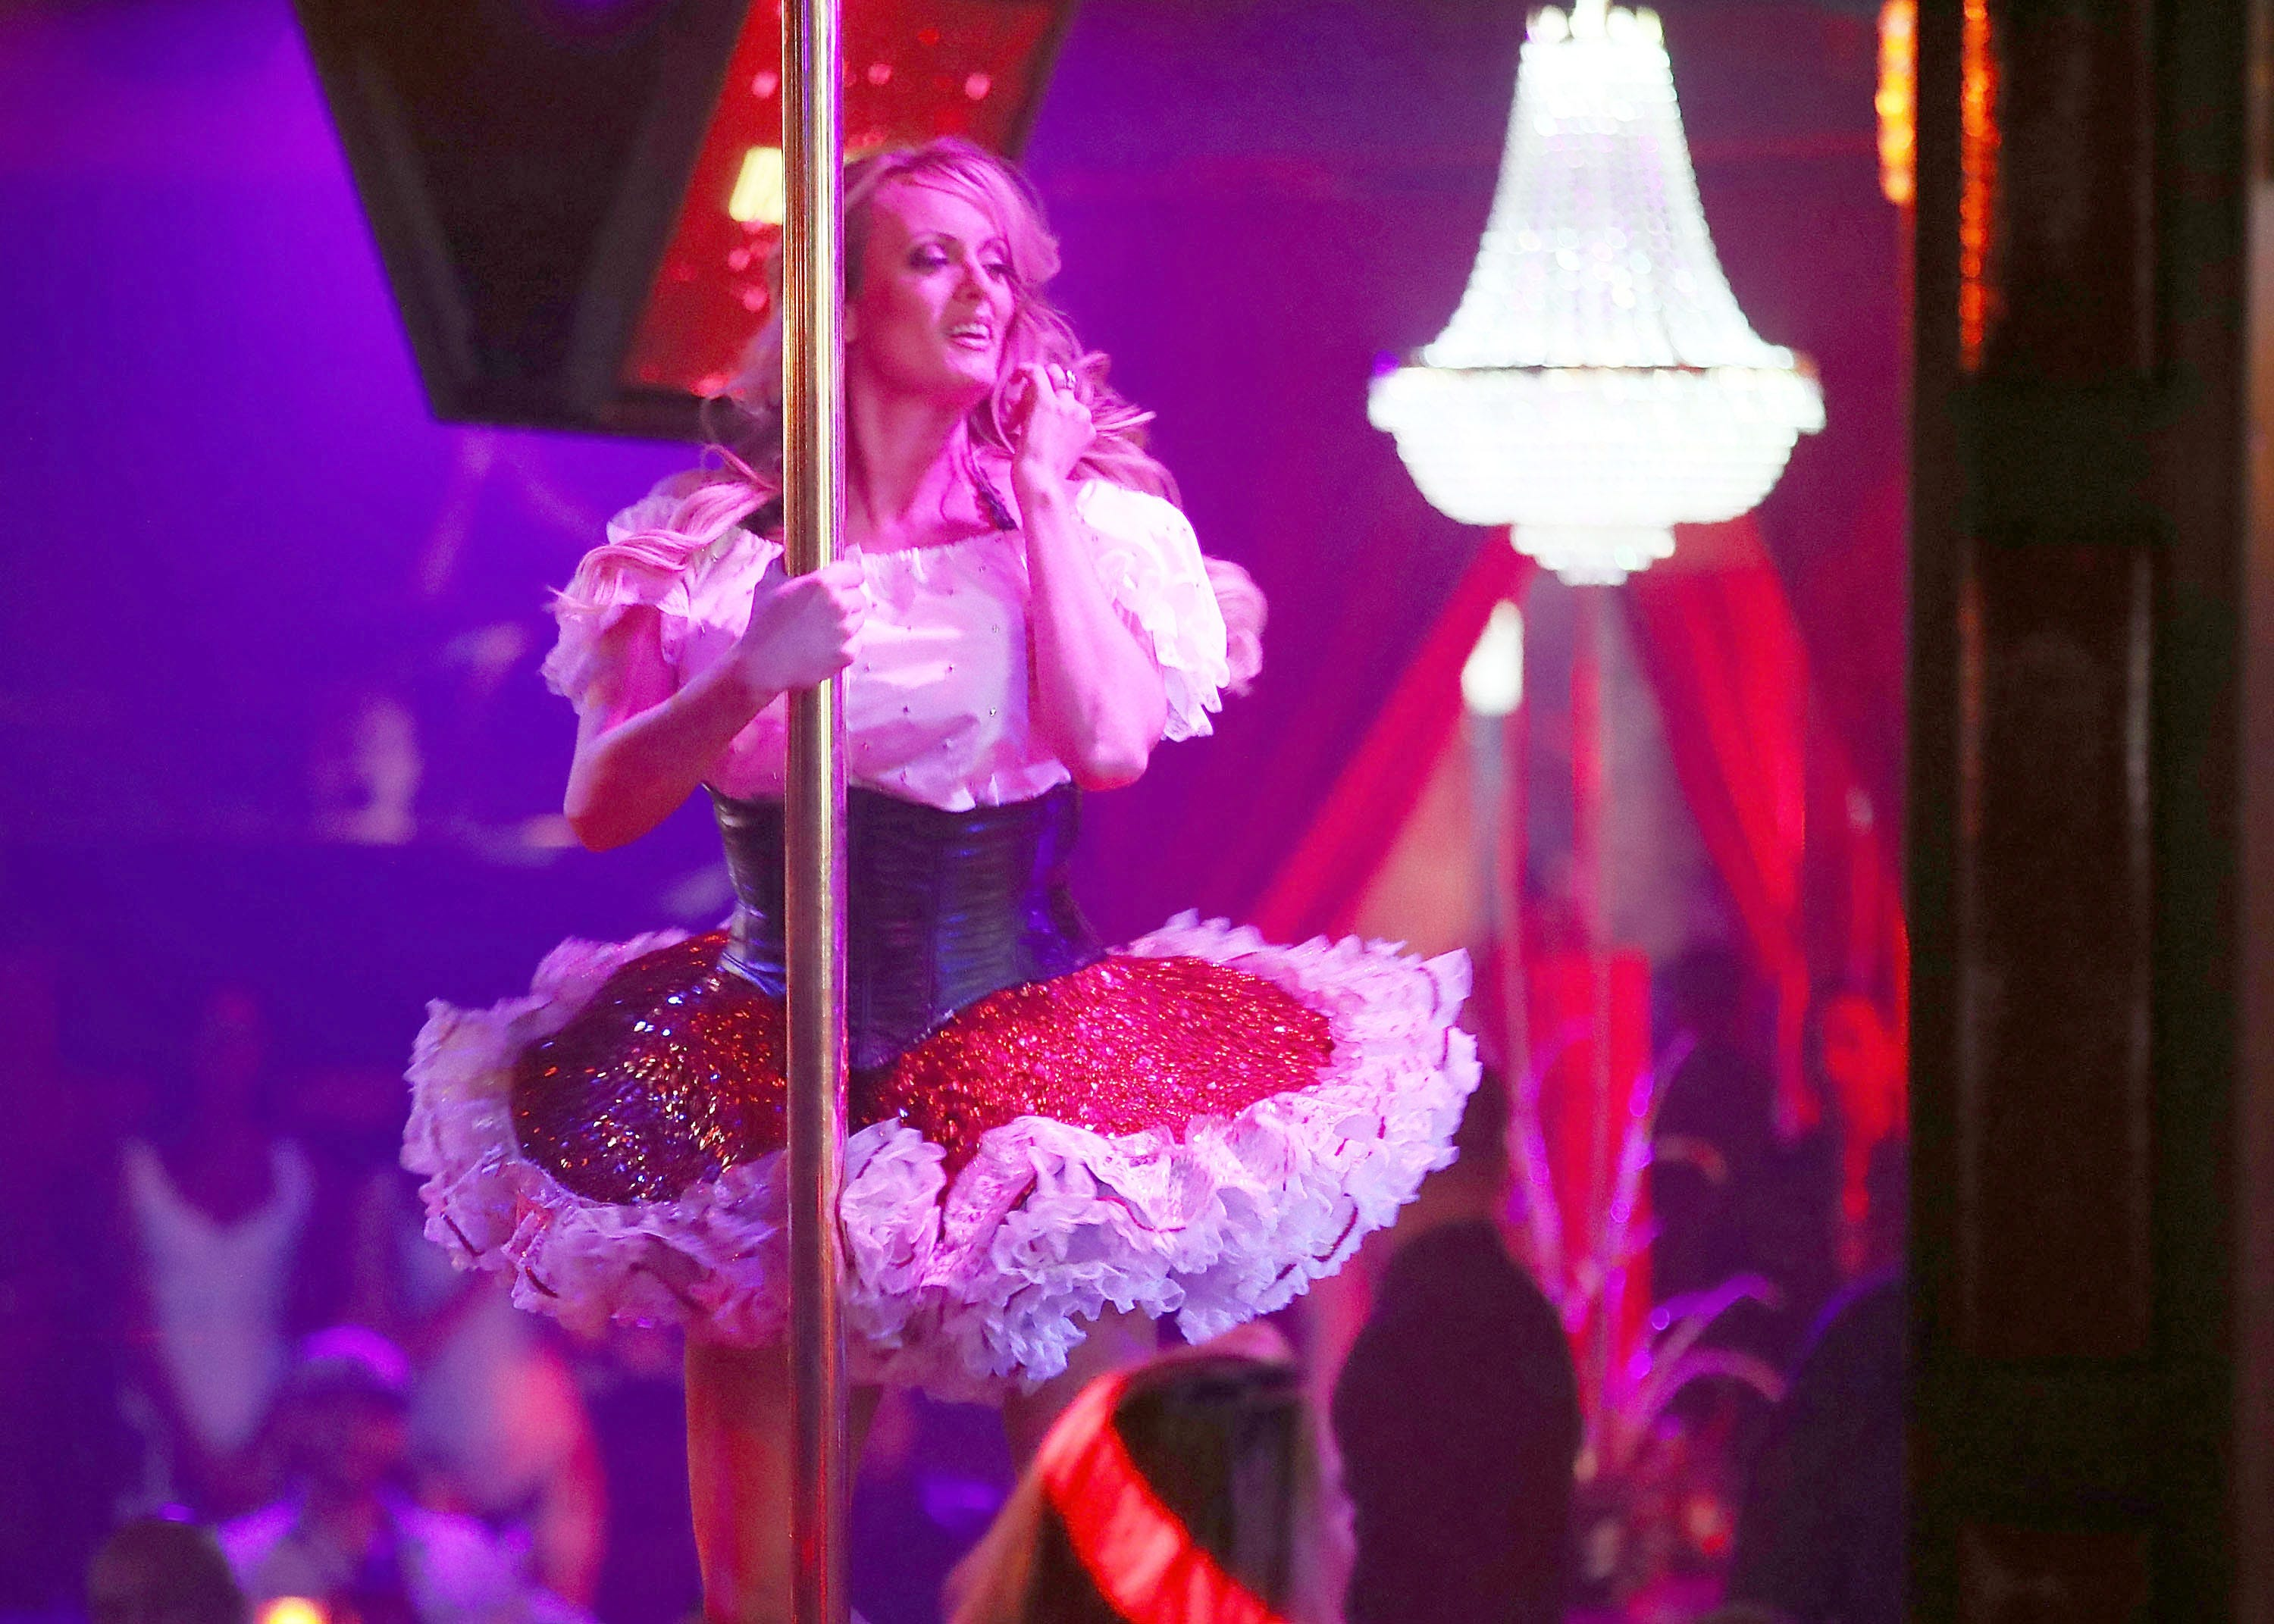 Best strip clubs in pittsburgh